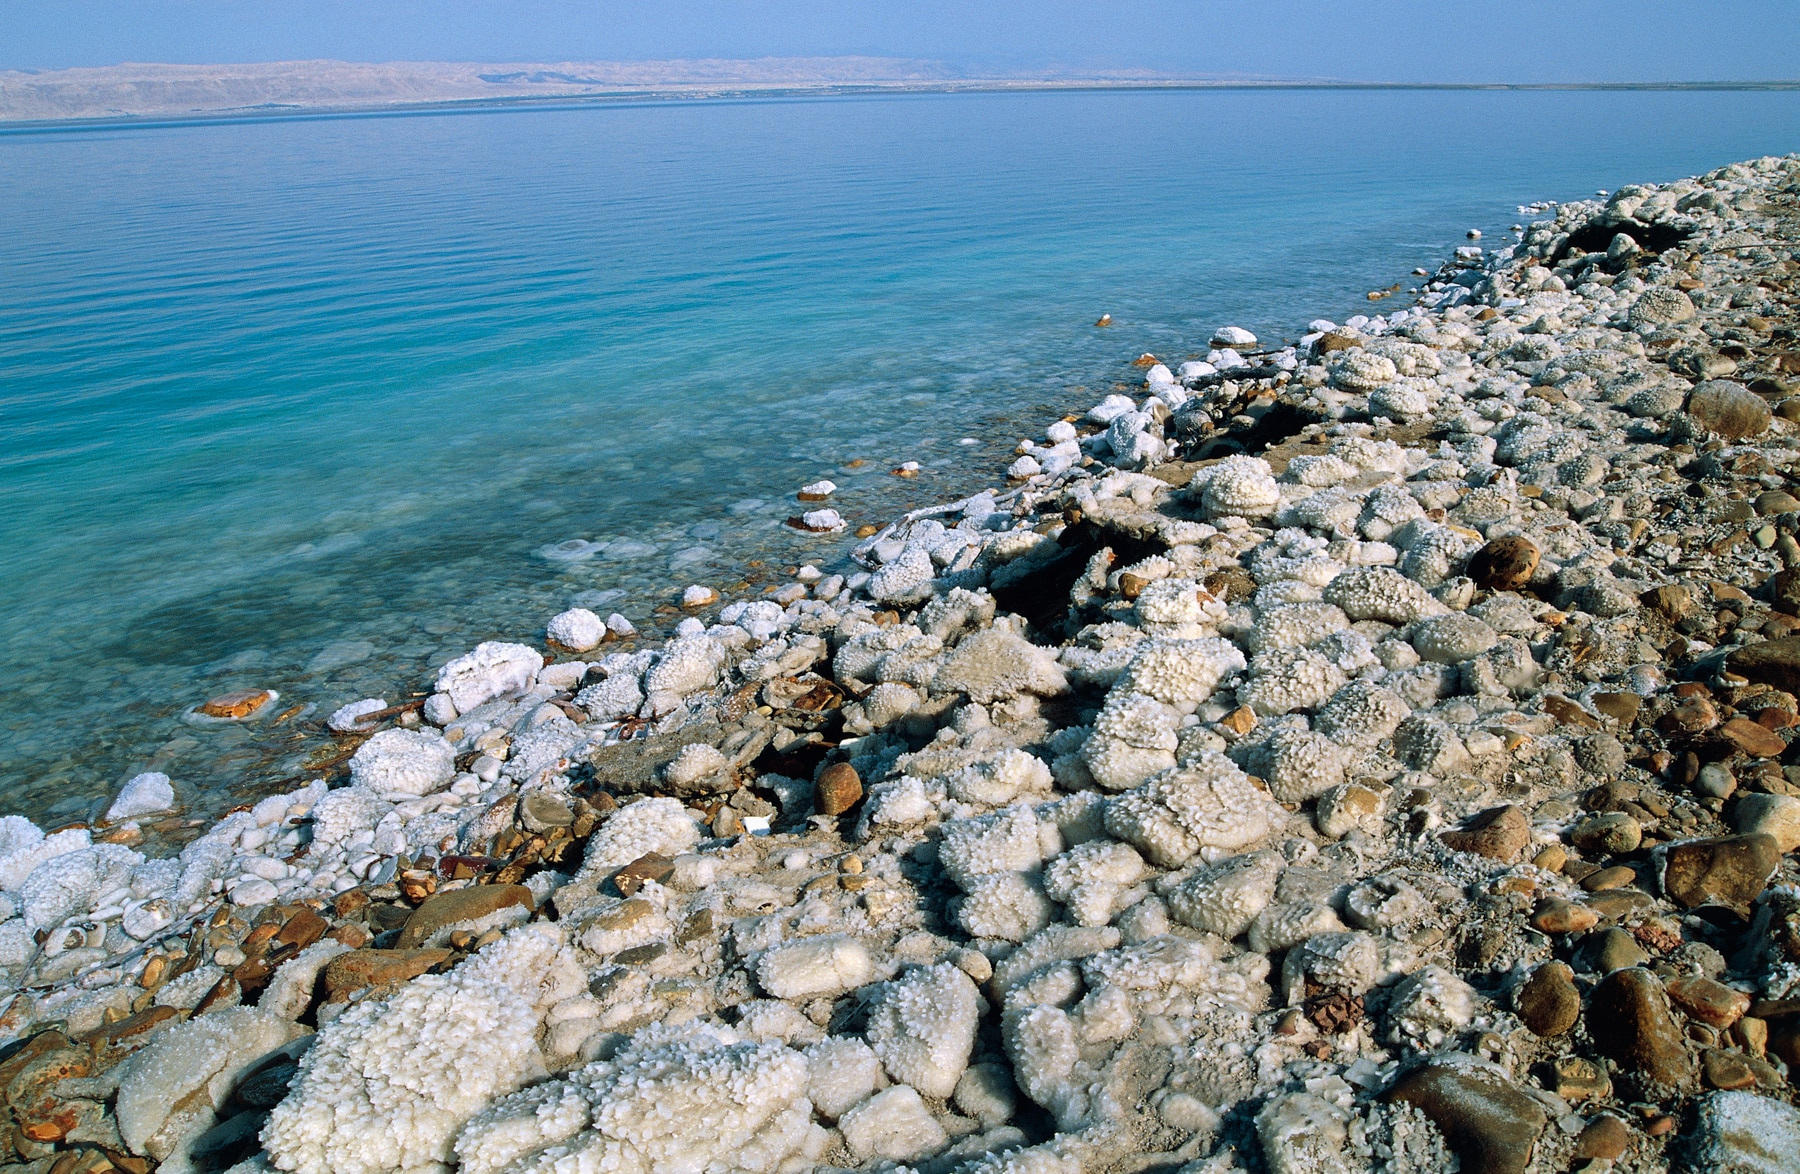 Salt concretions lying on the shore of the Dead Sea (© Getty Images)